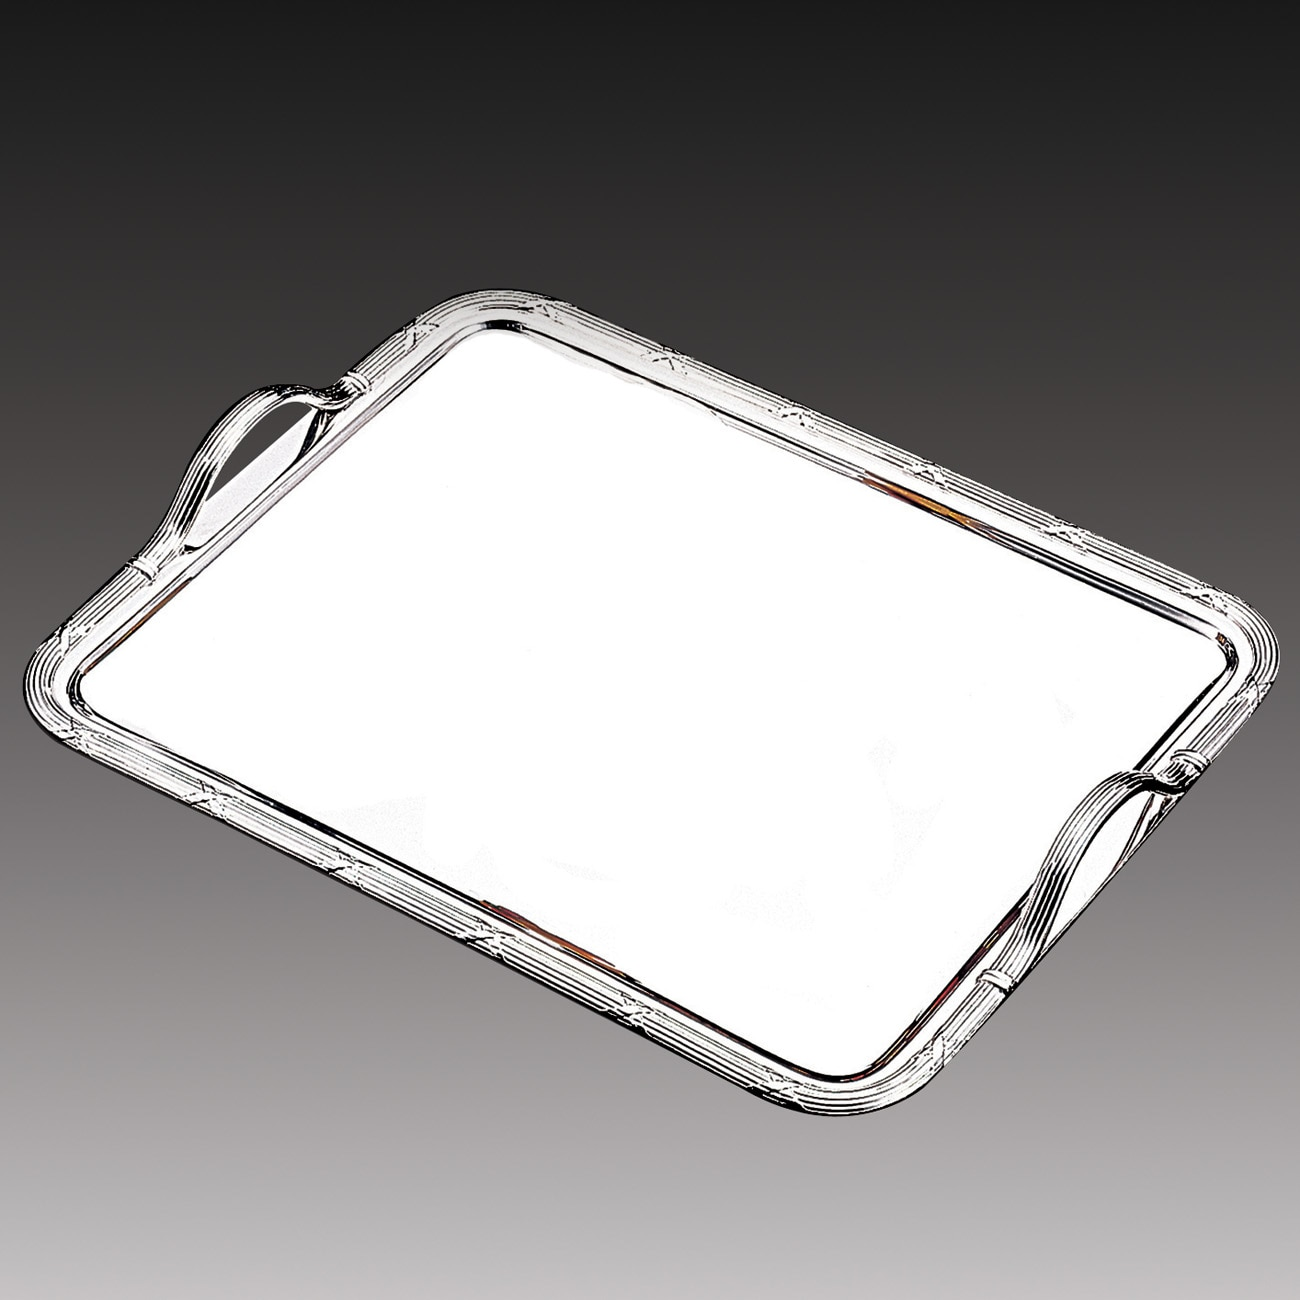 Wolff Silver Stainless Steel Large Rectangular Serving Tray with Handles